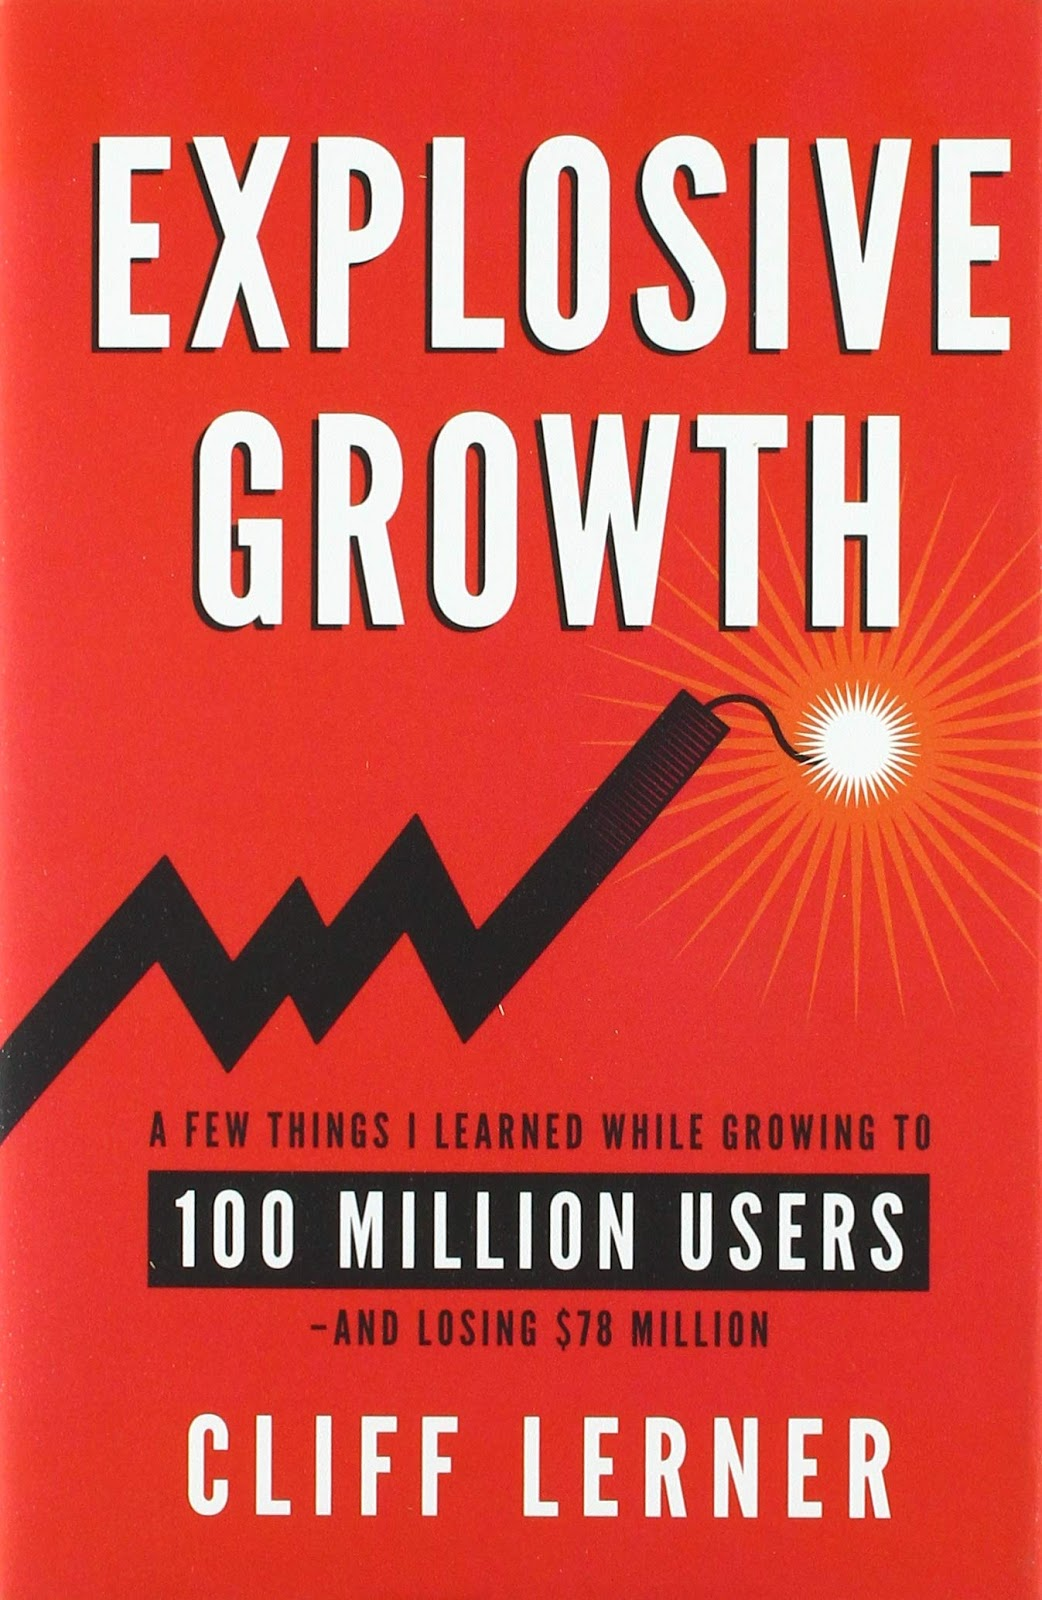 growth and growth hacking books explosive growth